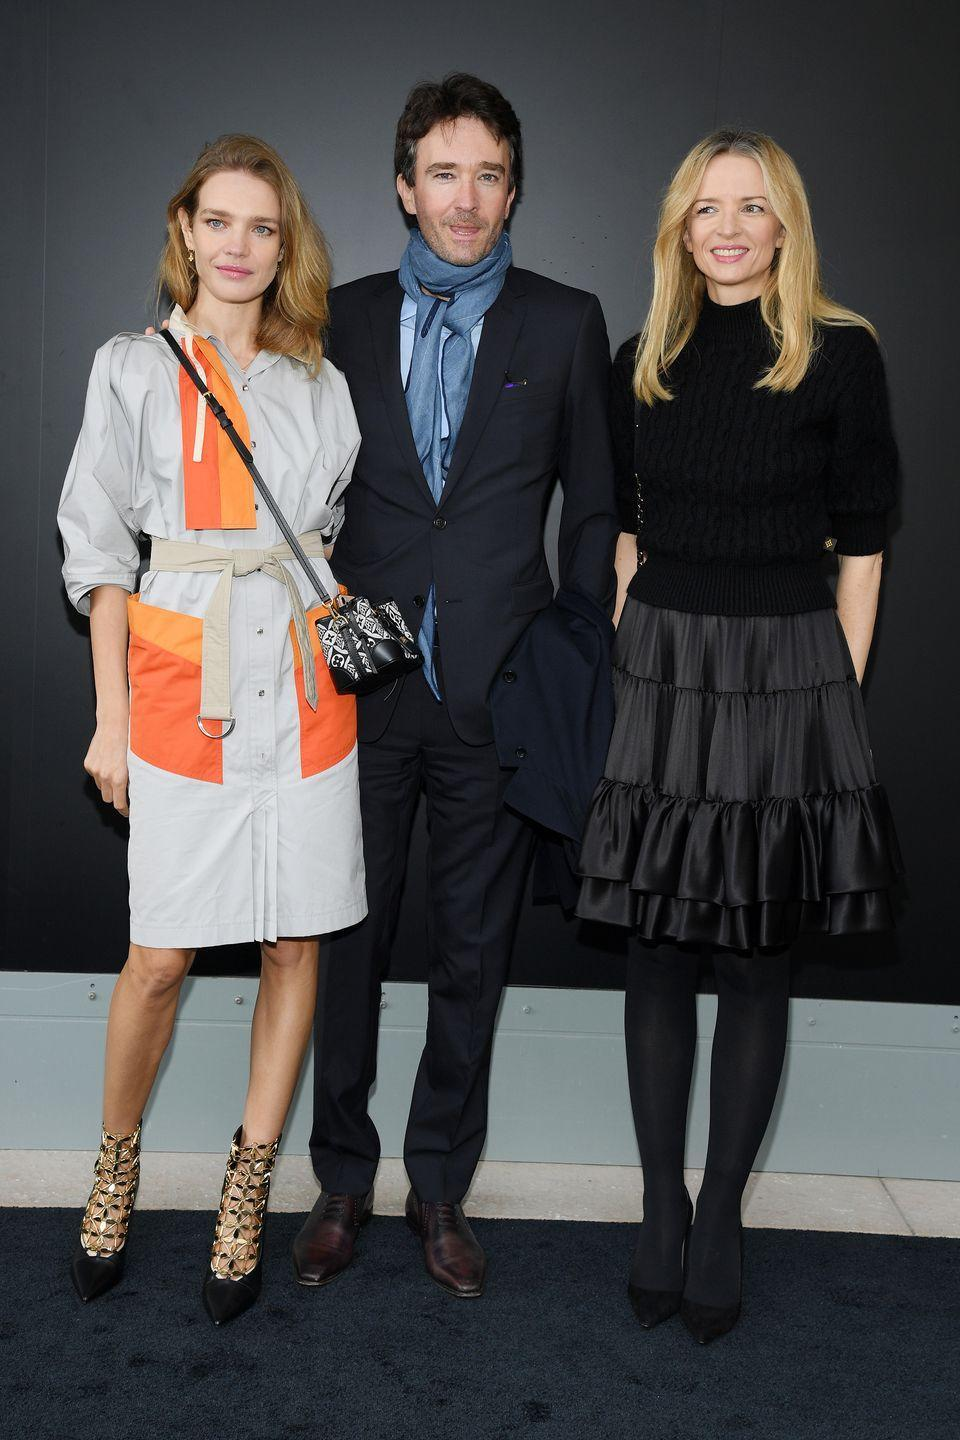 <p><strong>6 October</strong> Natalia Vodianova posed with Antoine Arnault and Delphine Arnault at the show. </p>